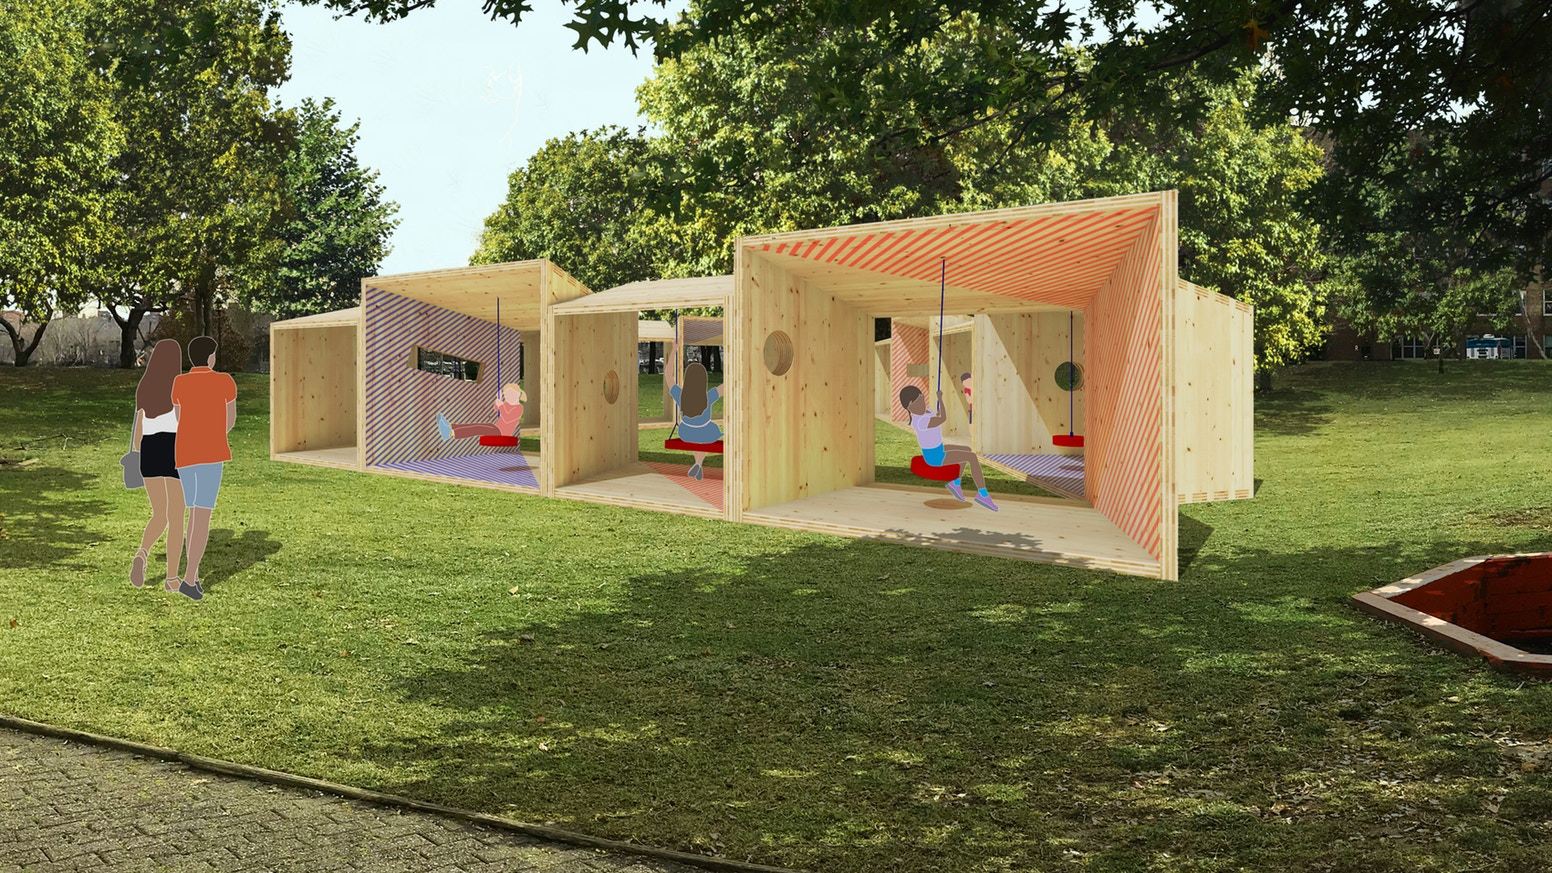 Somewhere Studio's Project Selected For City of Dreams 2019 Pavilion